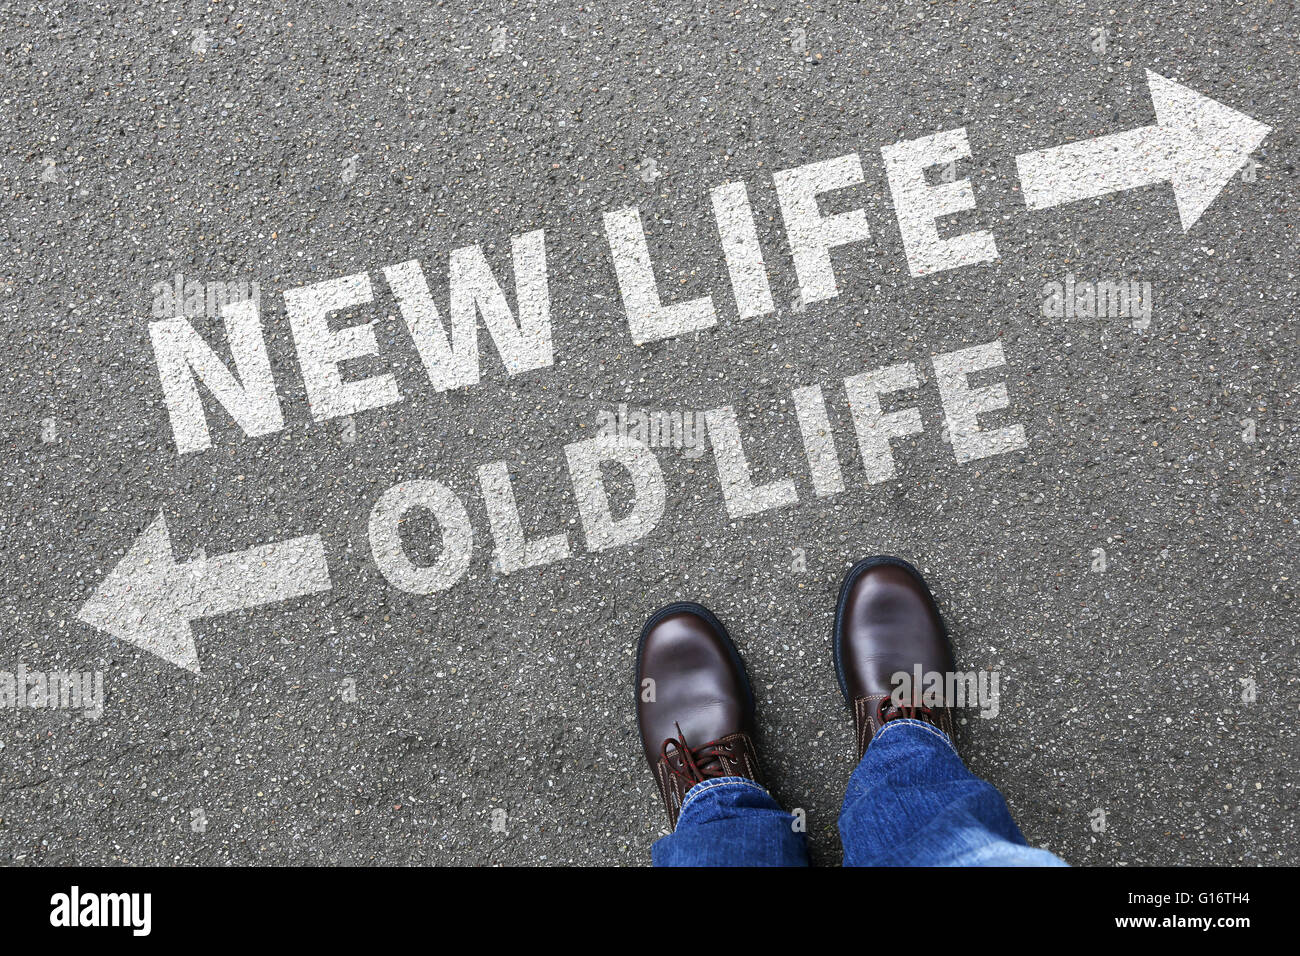 Old new life future past goals success decision change decide choice - Stock Image